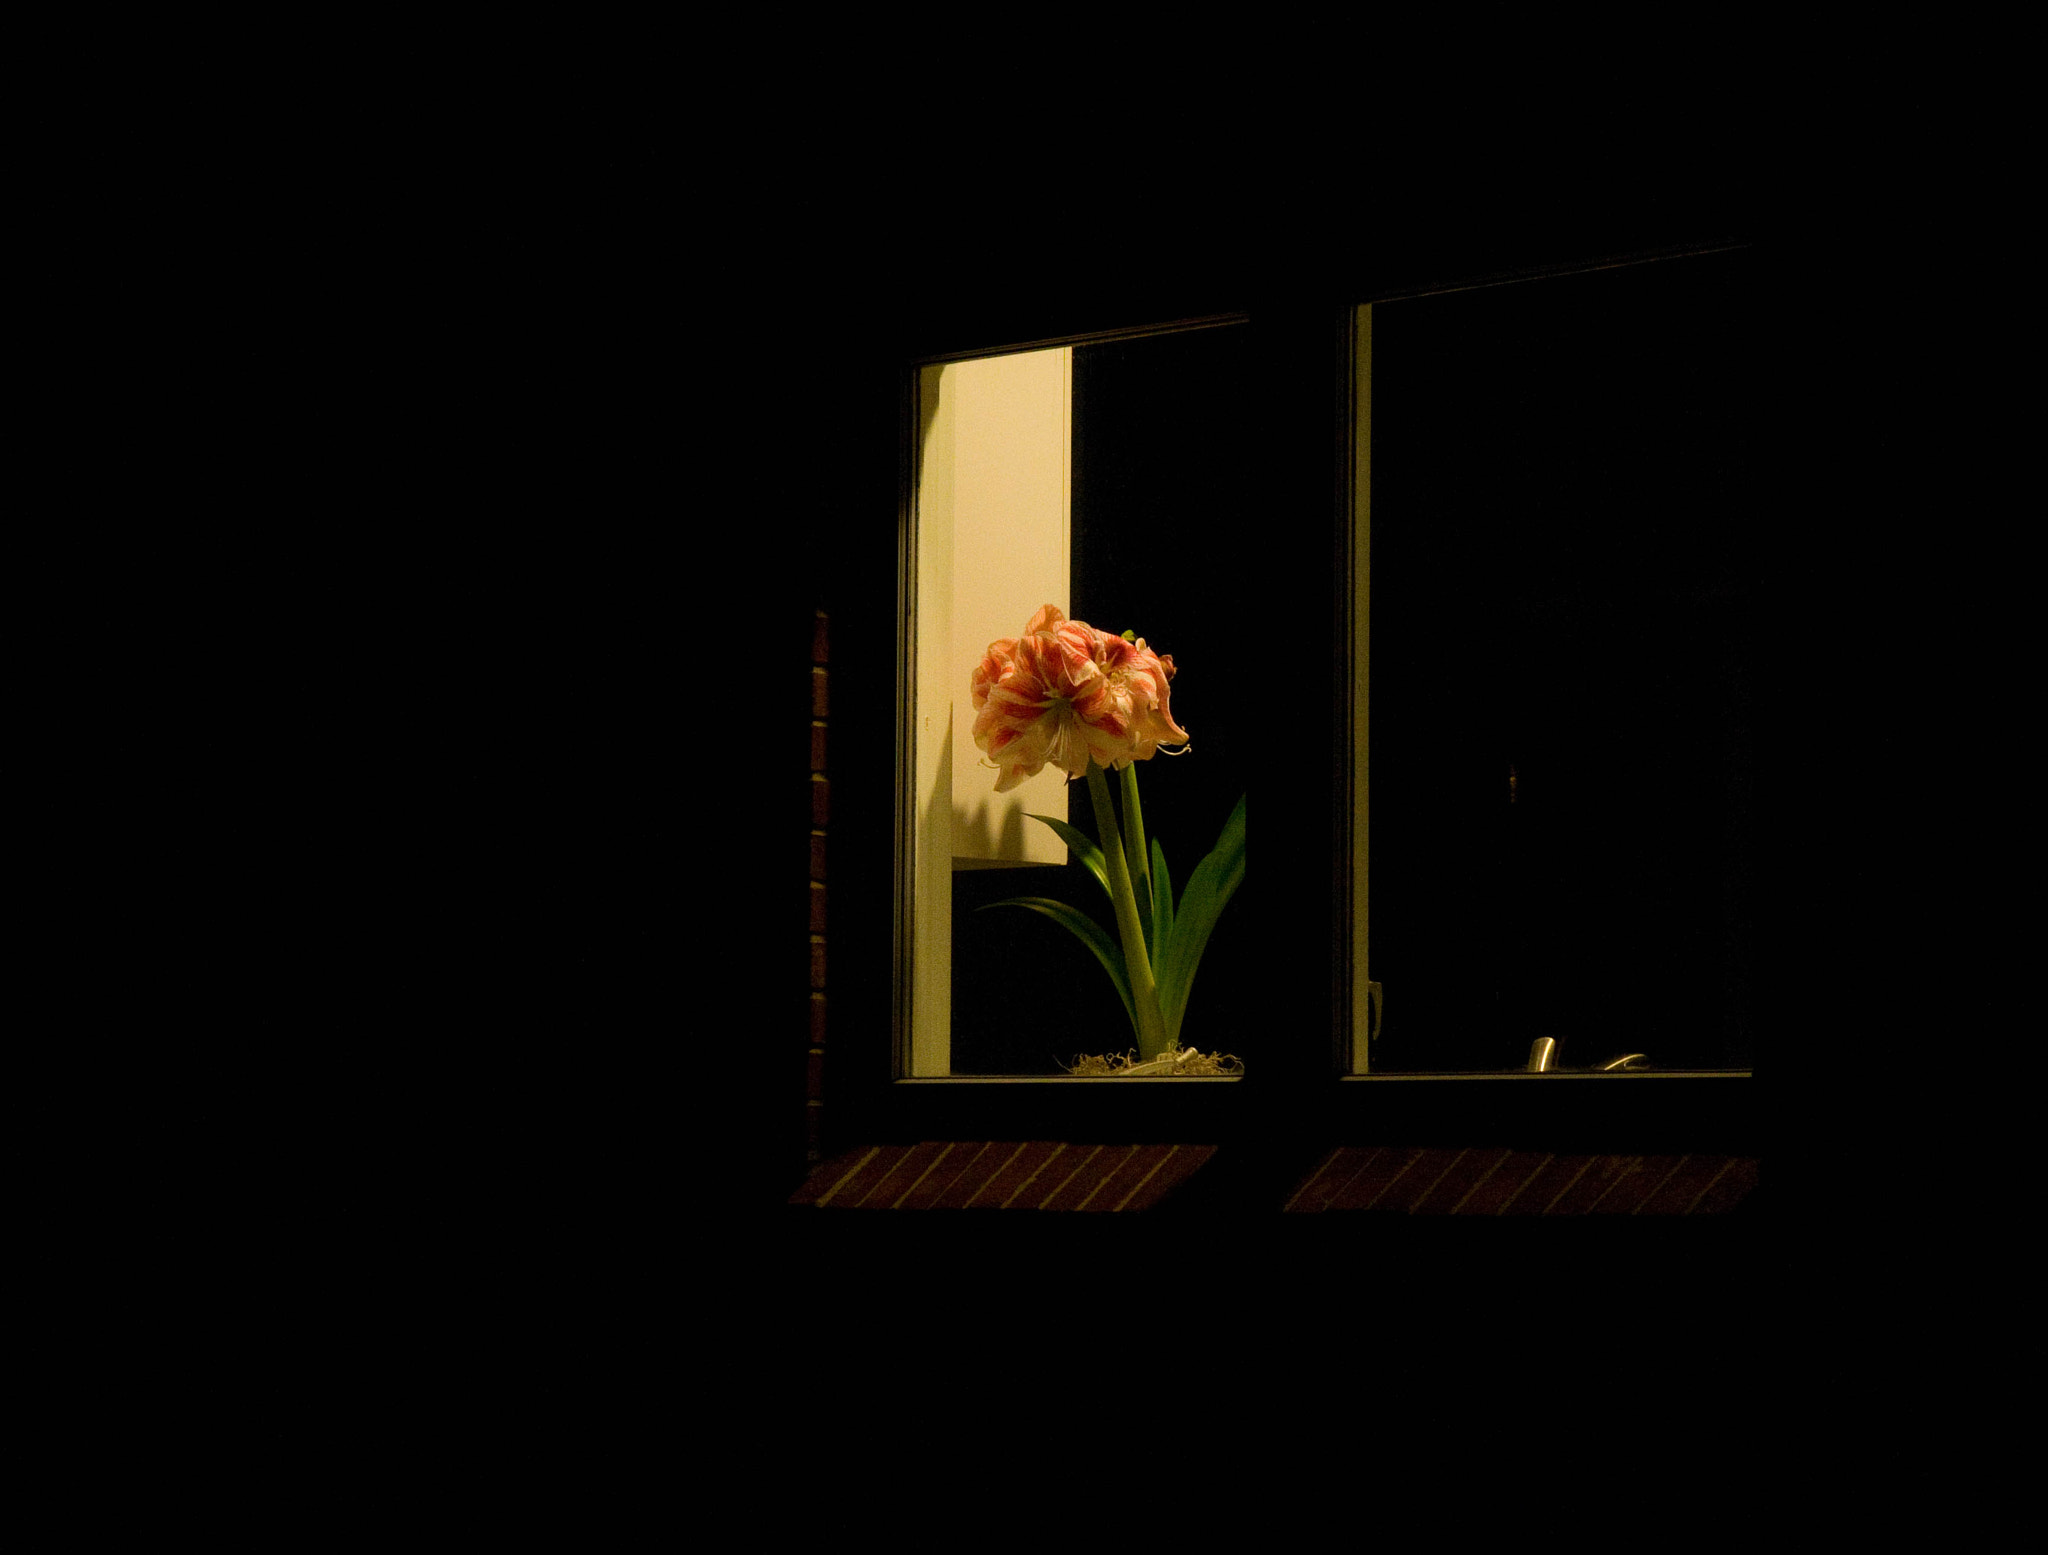 Photograph Ode to Hopper by lloyd doigan on 500px